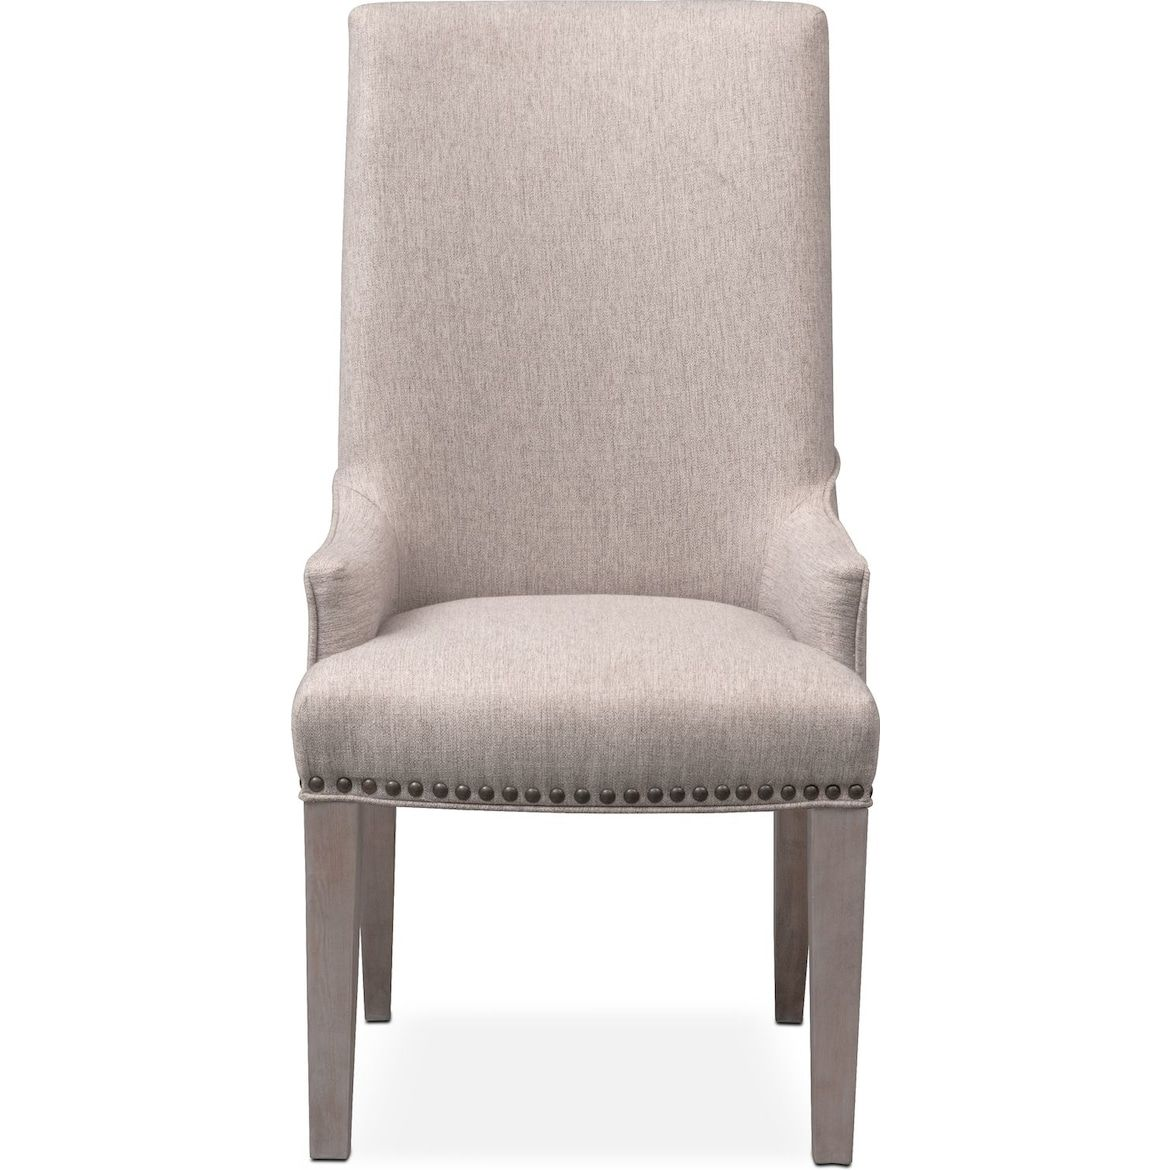 Charthouse Host Chair Furniture, Value city furniture, Chair